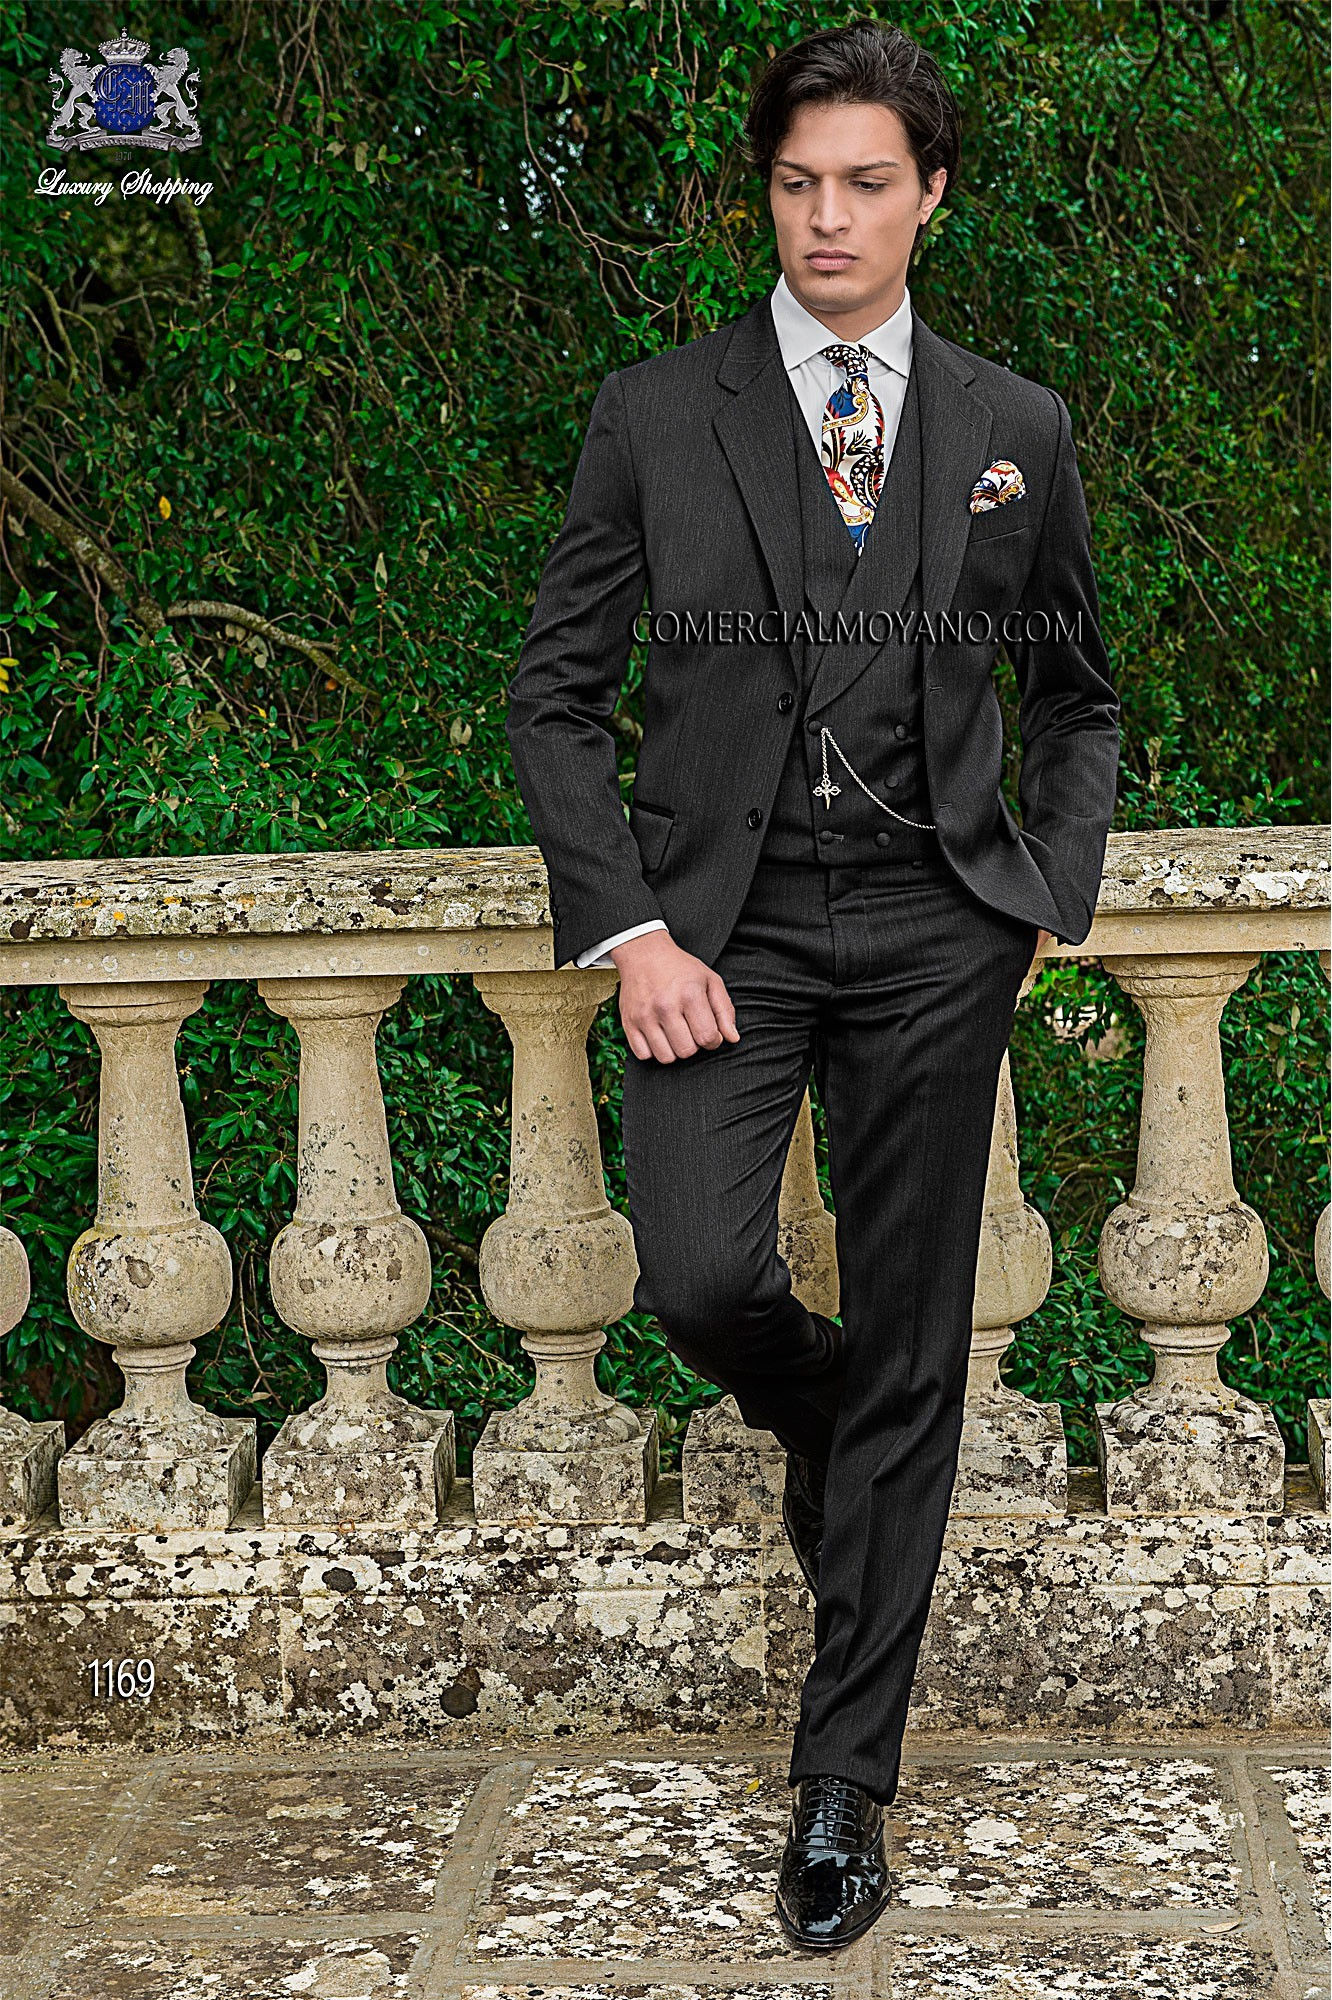 Gentleman gray men wedding suit model 1169 Ottavio Nuccio Gala